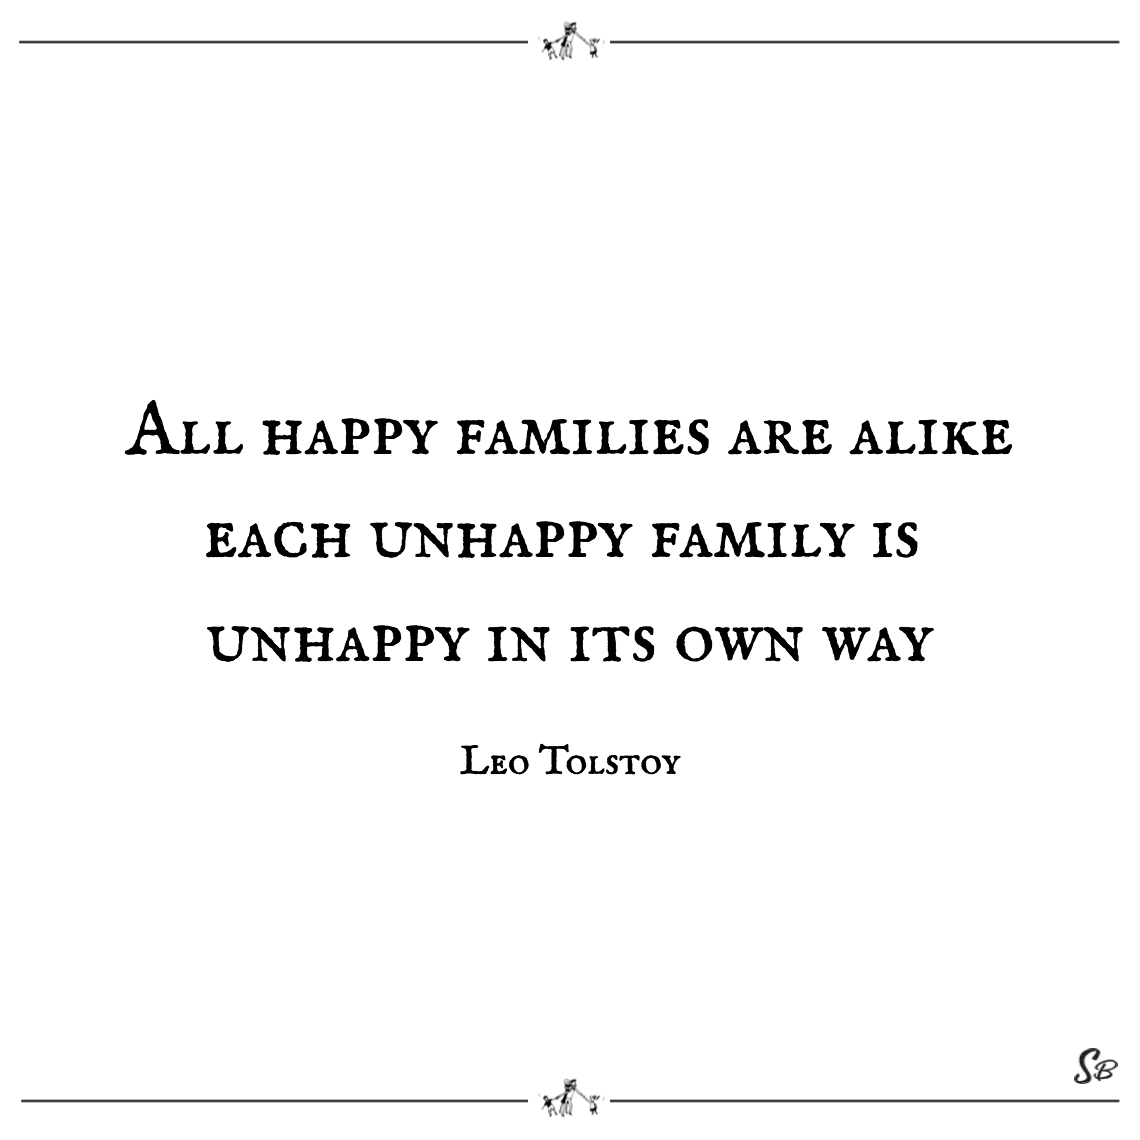 All happy families are alike each unhappy family is unhappy in its own way leo tolstoy